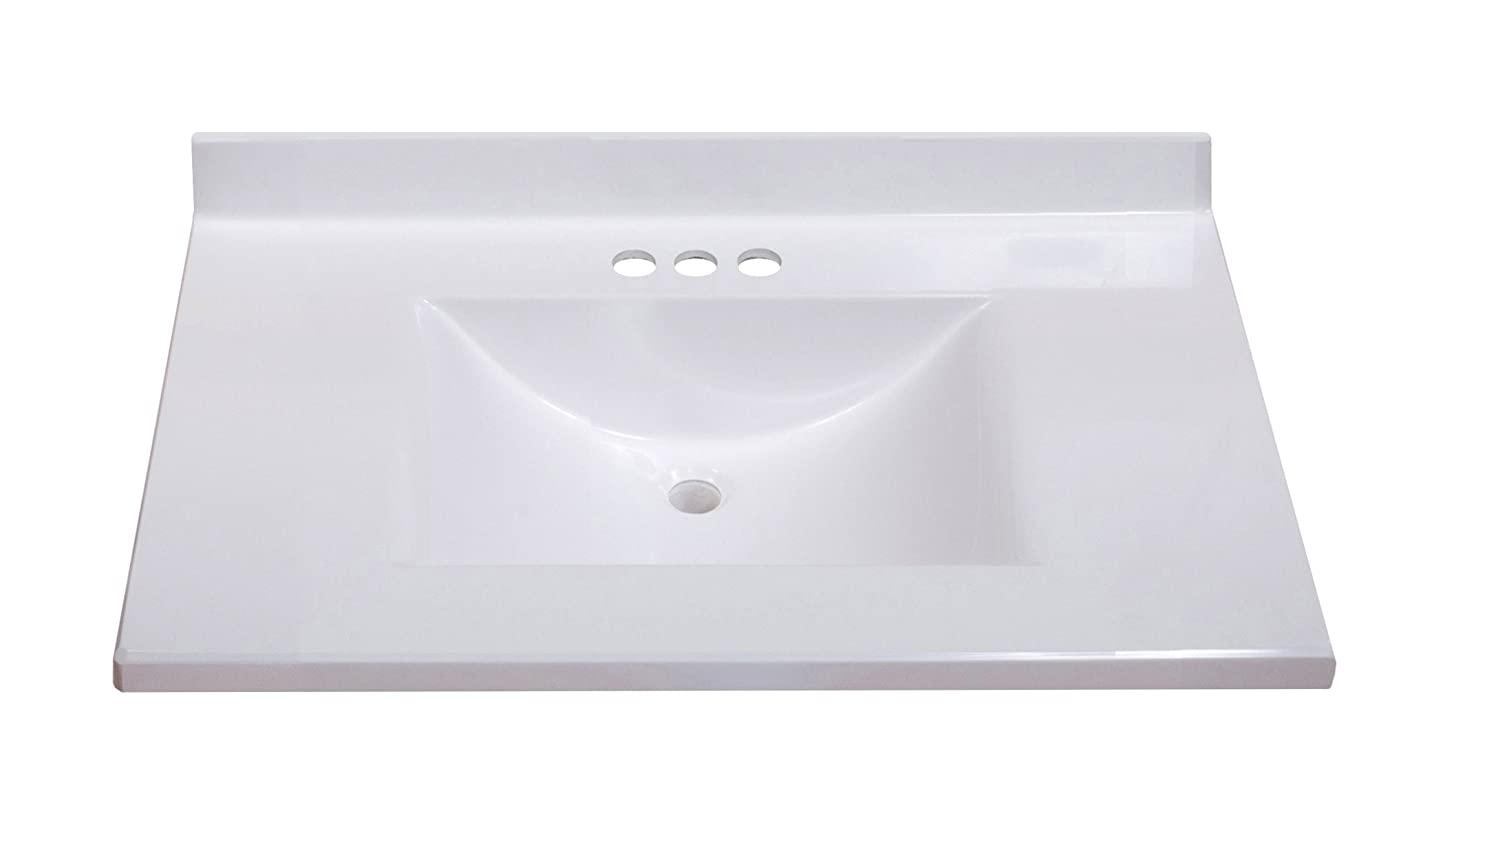 22 inch wide bathroom vanity - Imperial Fw3122spw Center Wave Bowl Bathroom Vanity Top Solid White Gloss Finish 31 Inch Wide By 22 Inch Deep Vanity Sinks Amazon Com